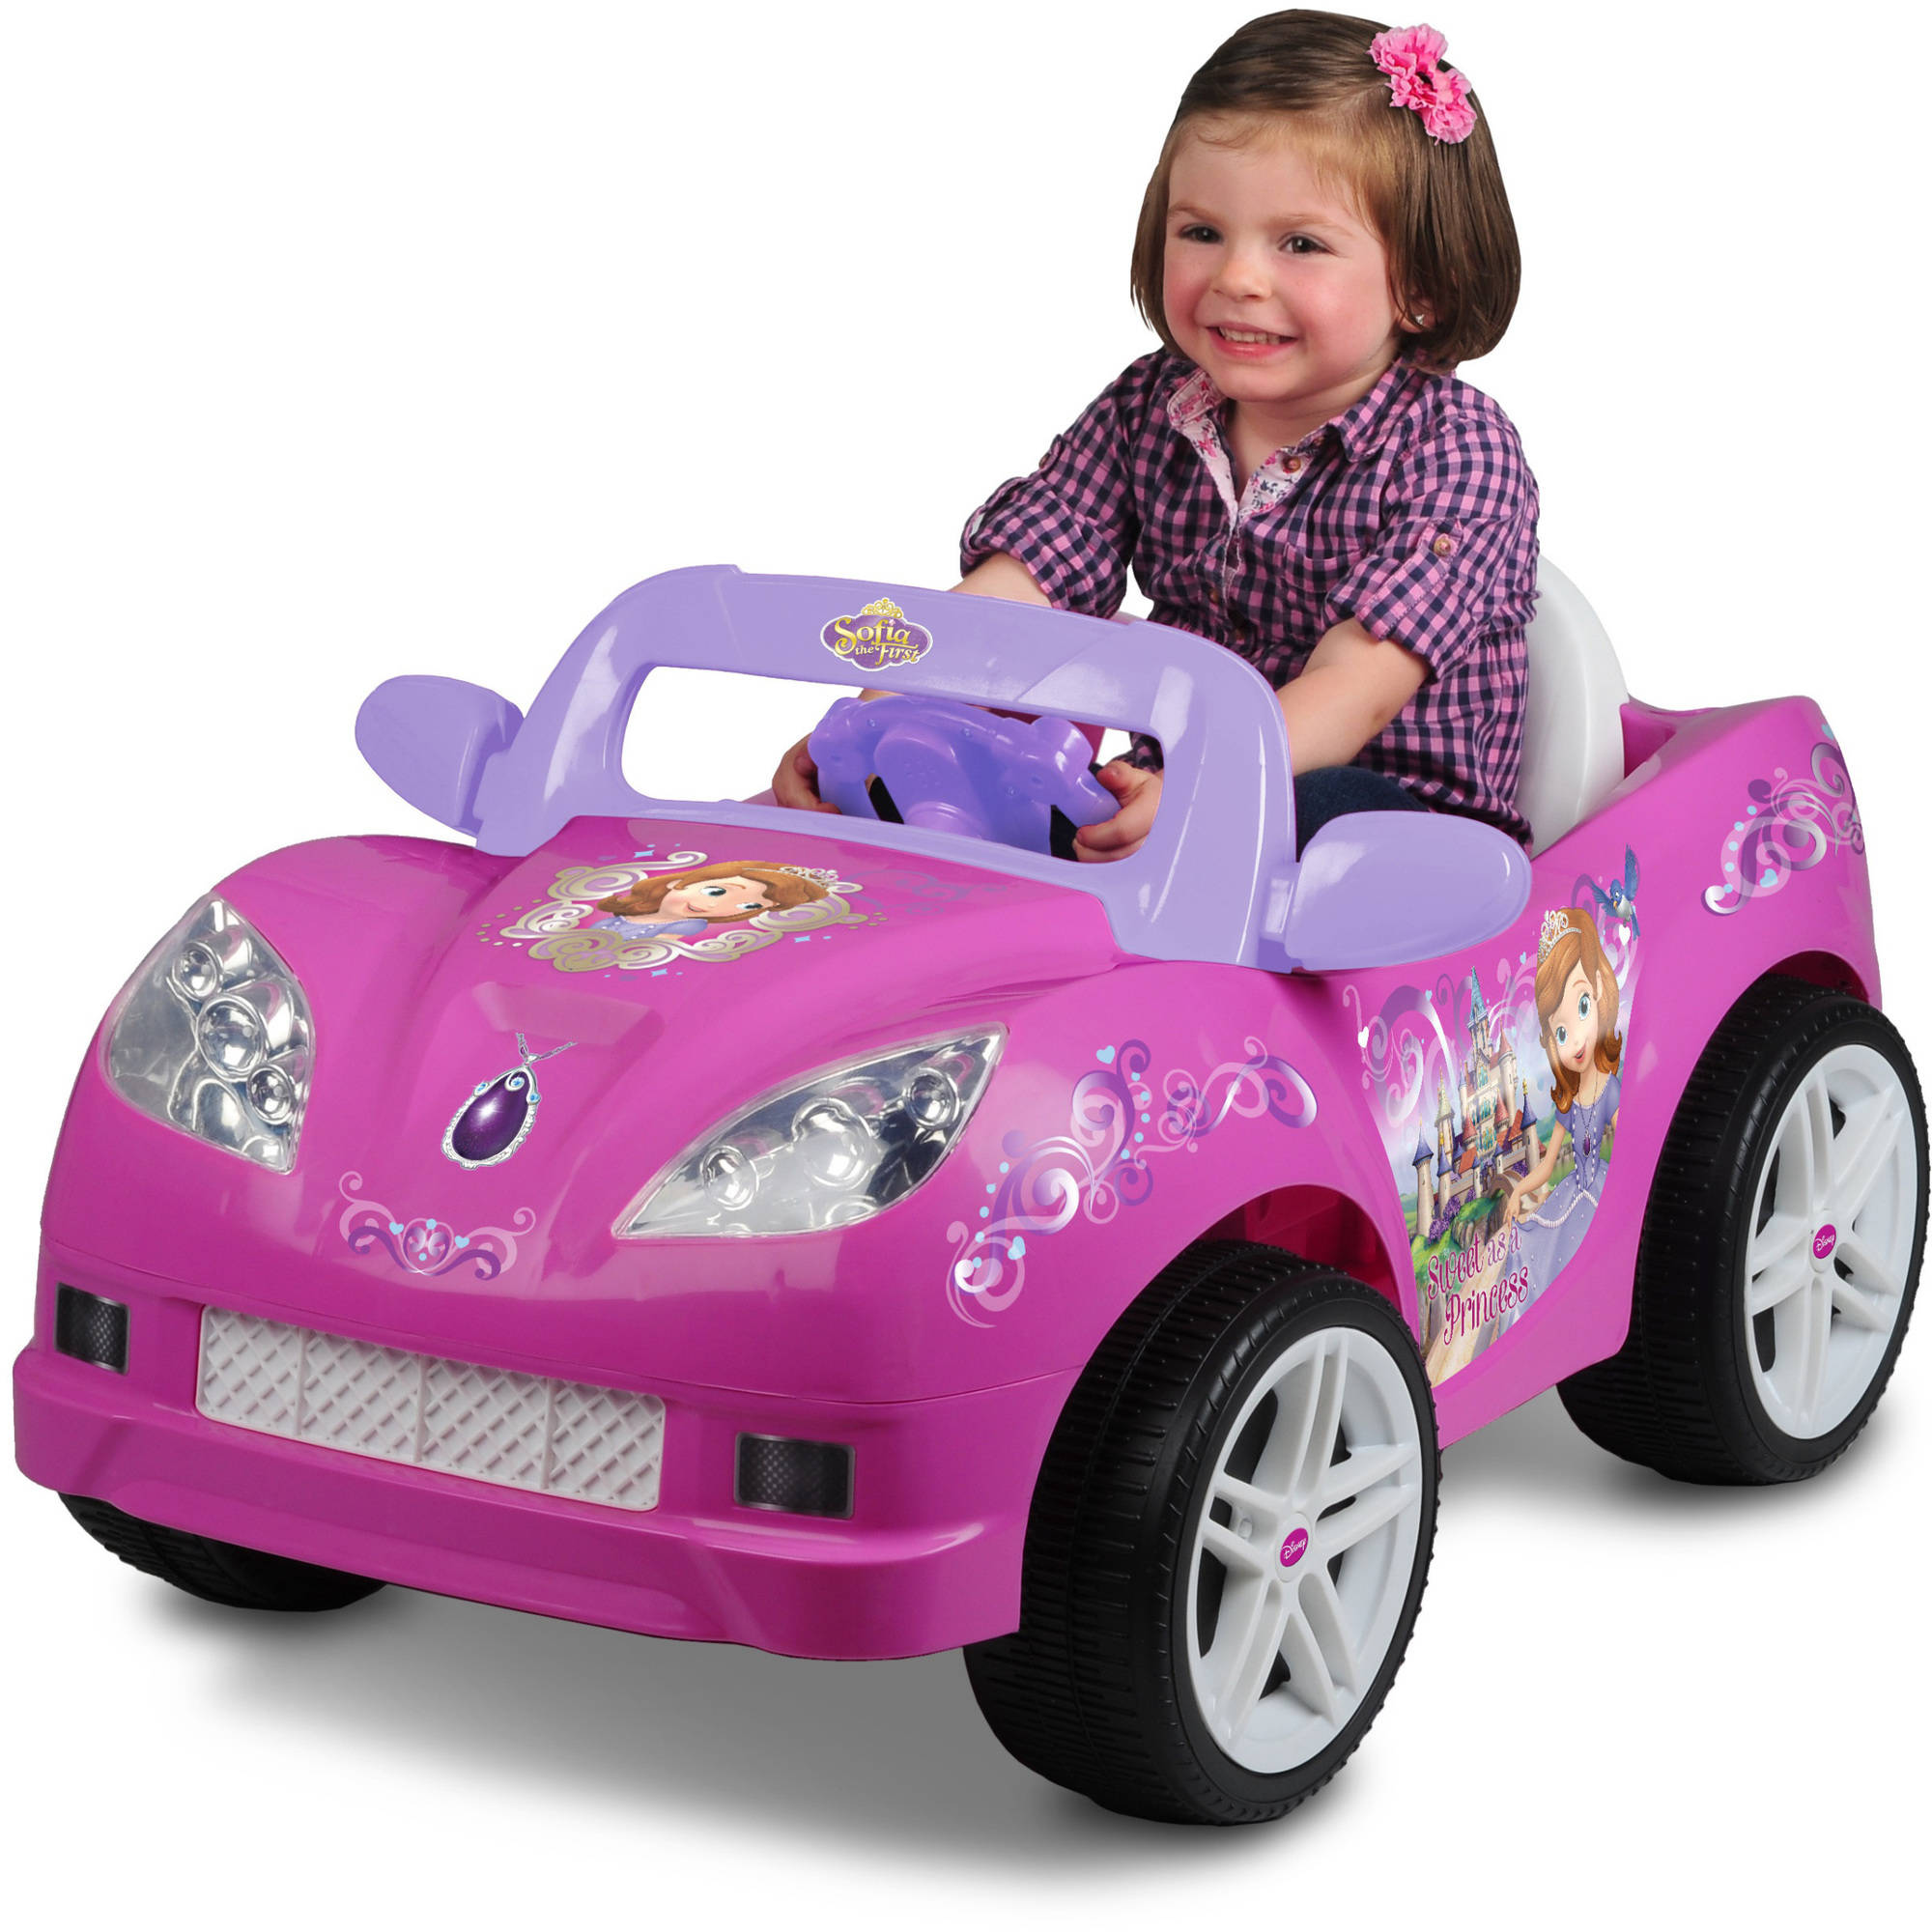 Disney Sofia the First Convertible Car 6-Volt Battery-Powered Ride-On